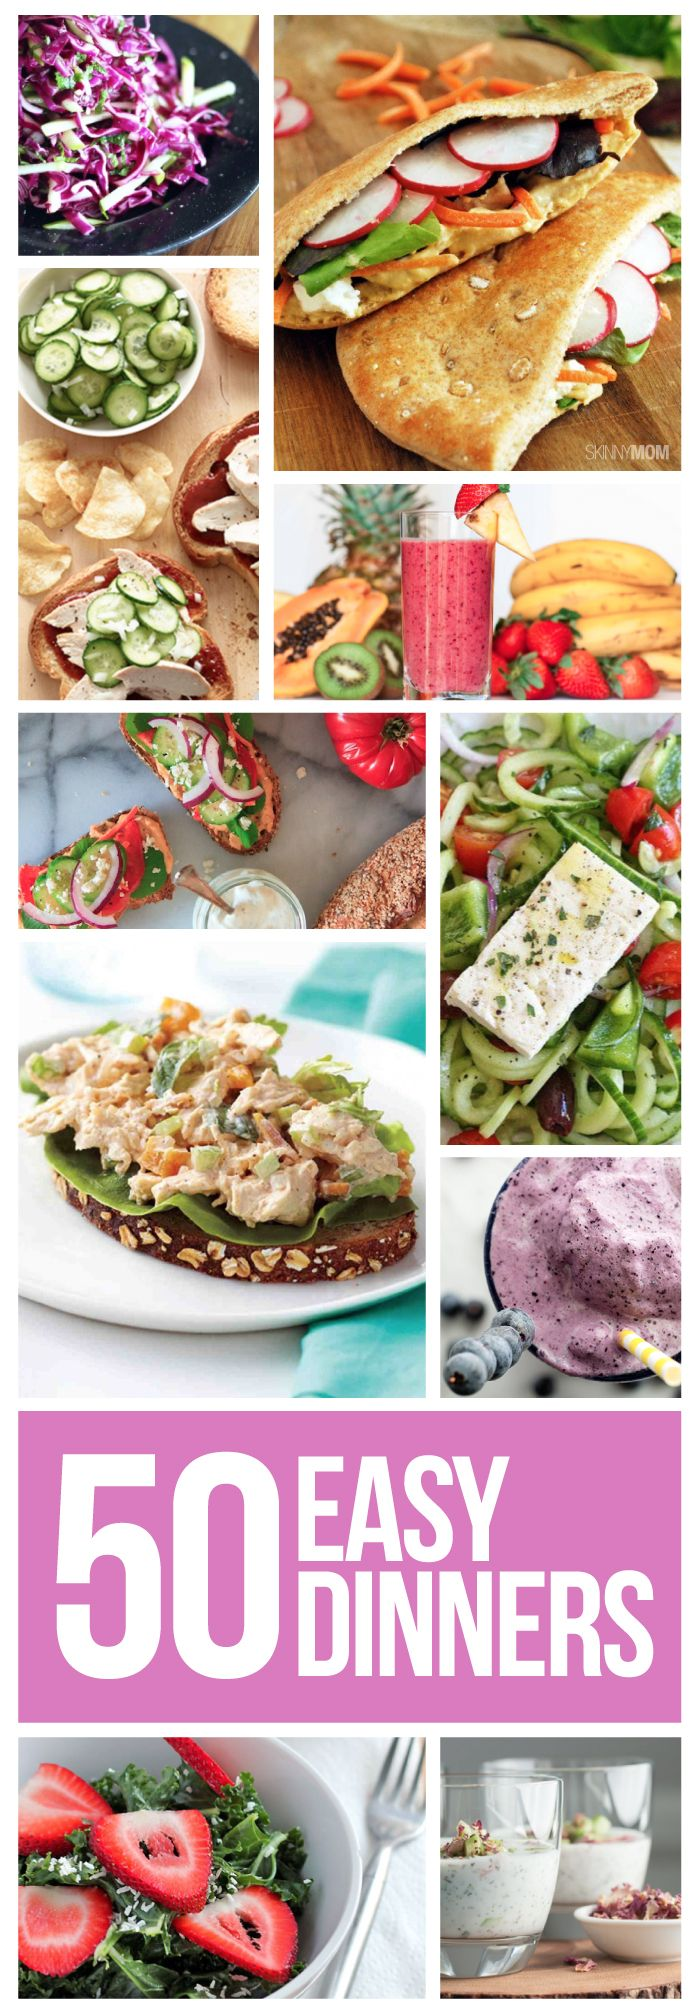 Here are 50 quick, easy, and healthy dinners for your busy weeknights!